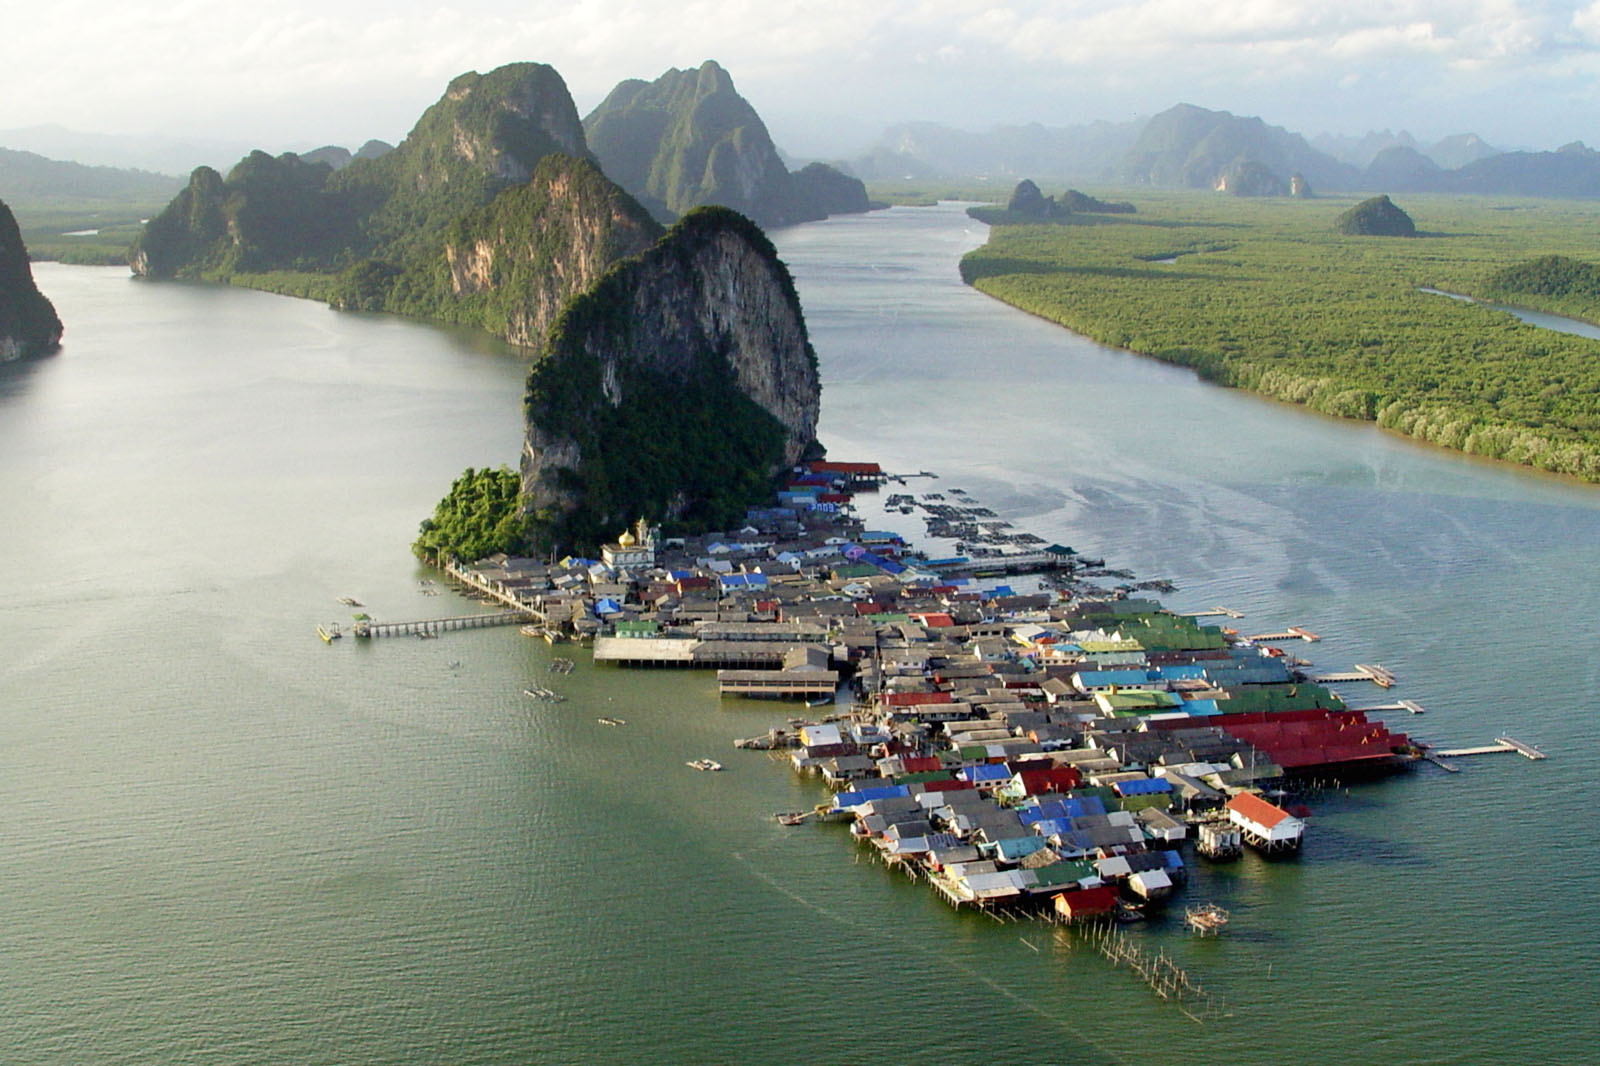 Phang Nga Bay: Local Town with Gorgeous Natural Surroundings